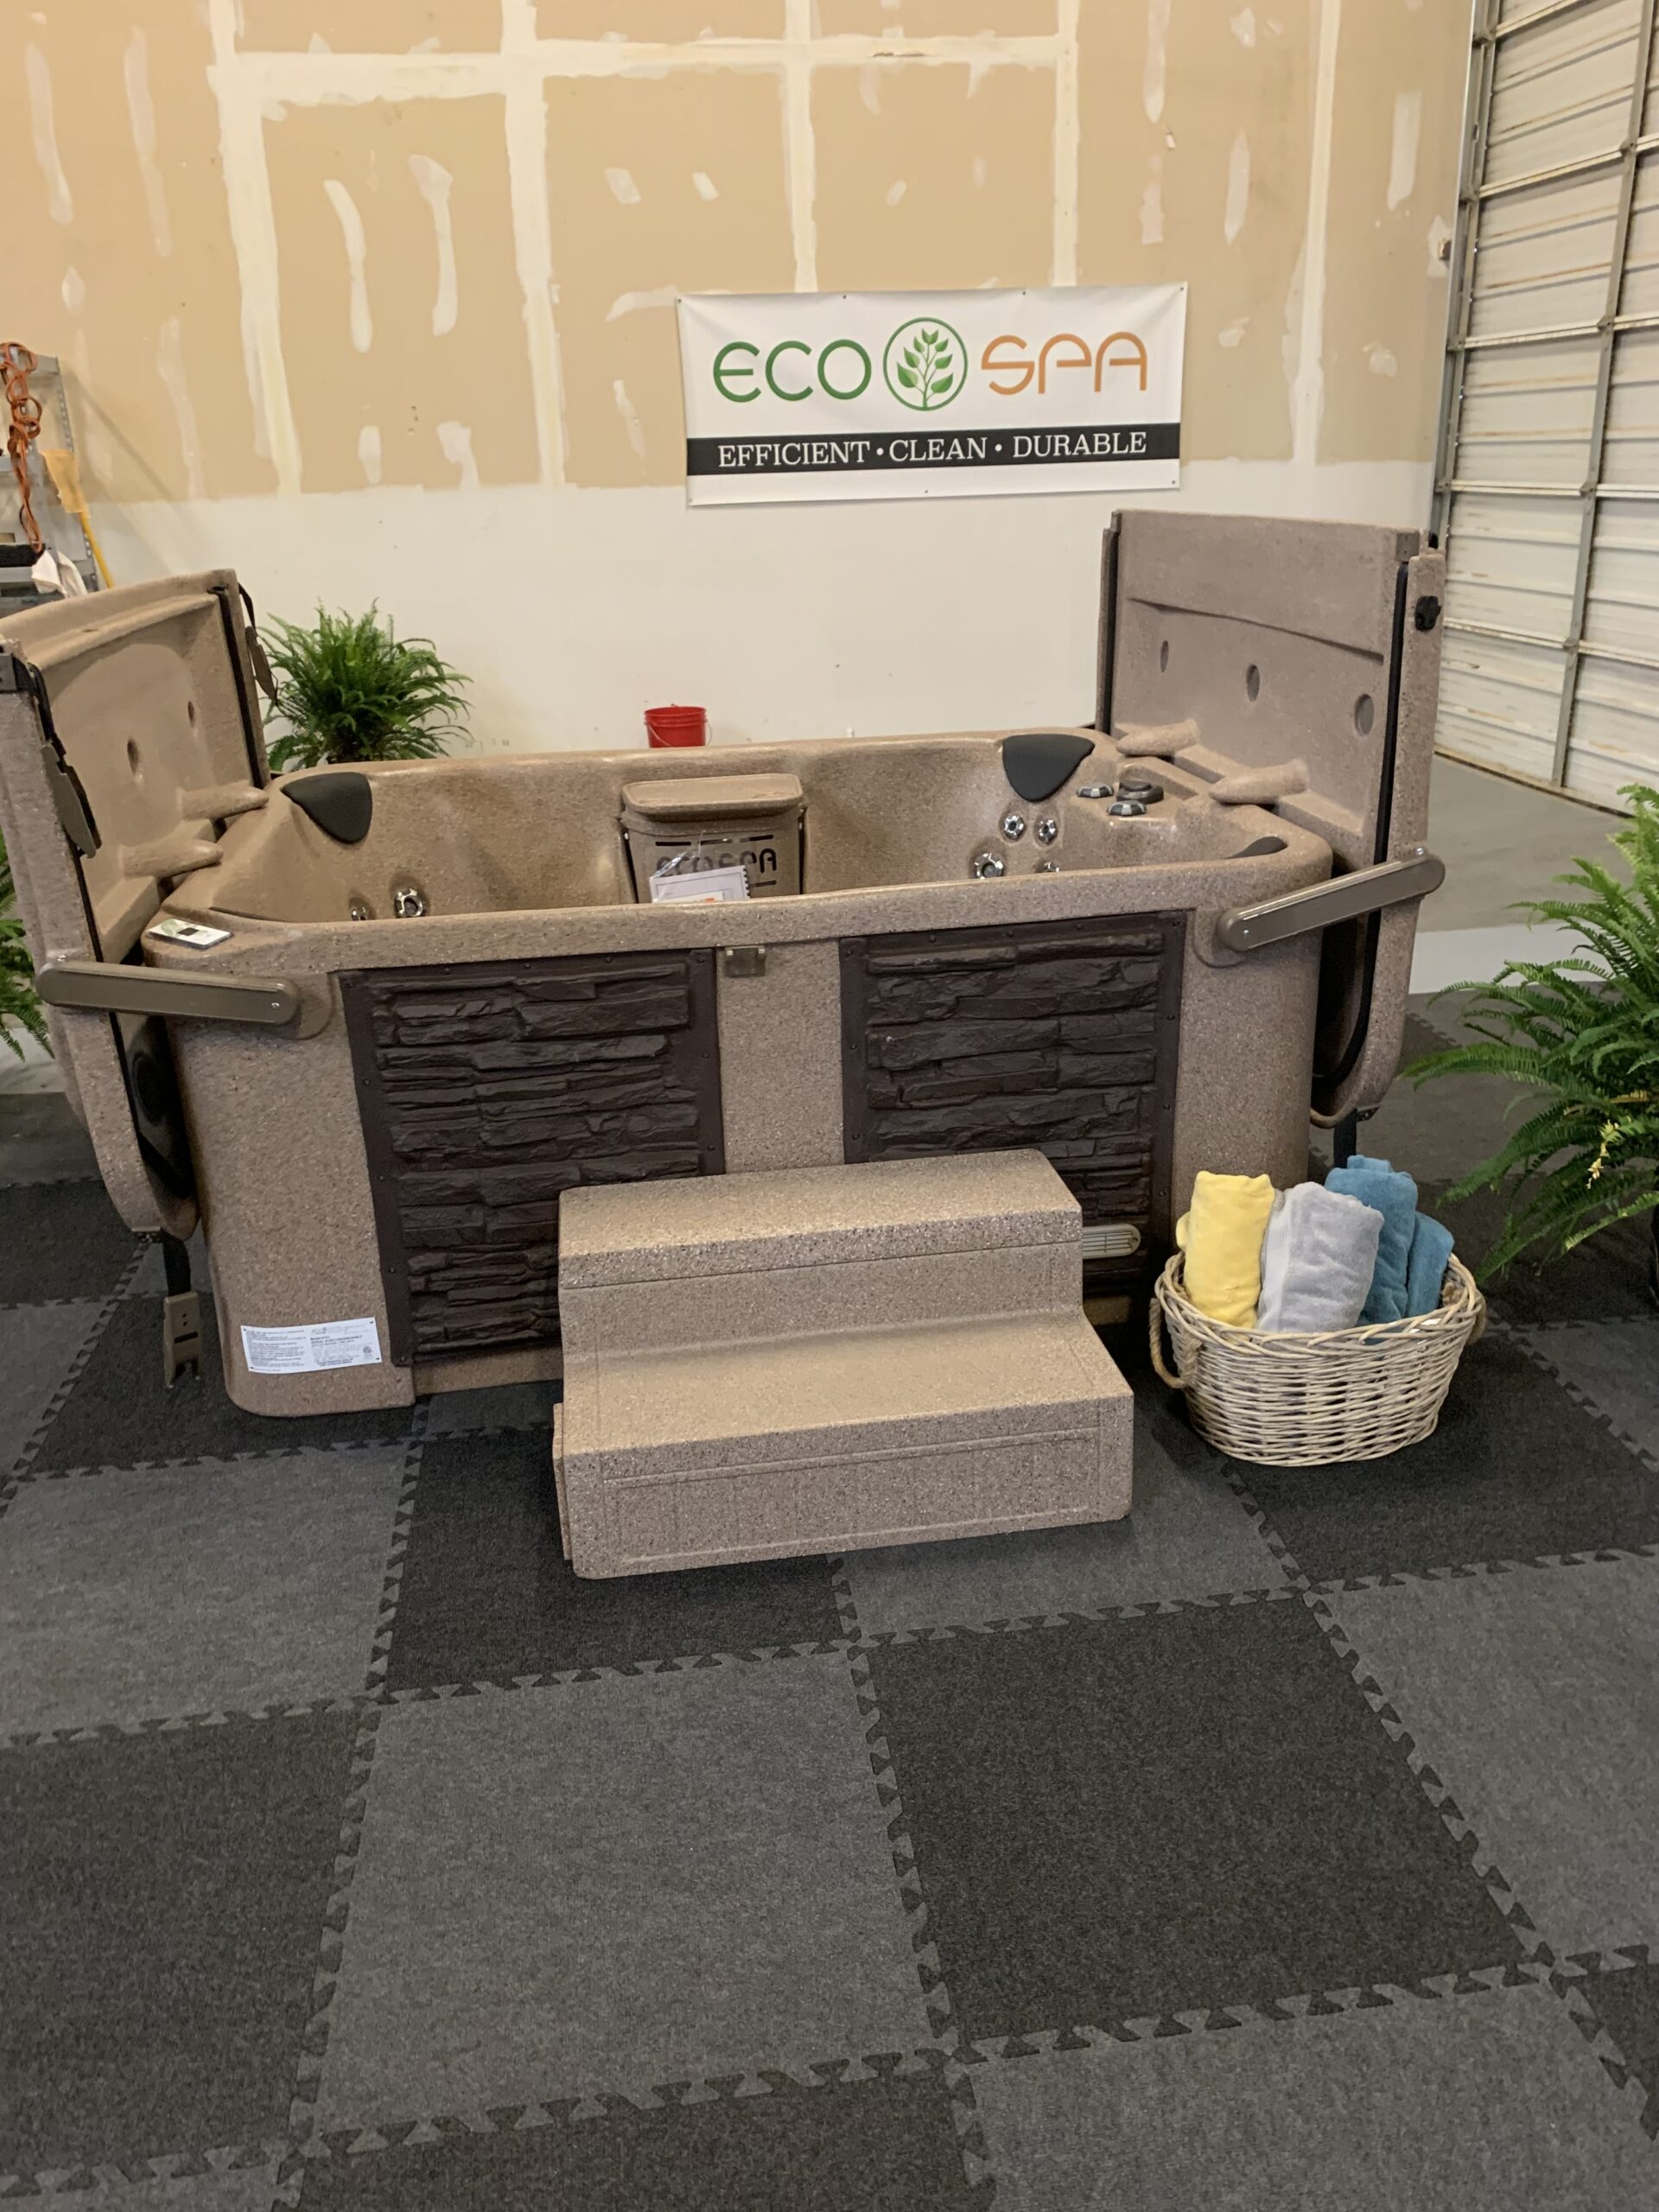 Southern Spa Outlet Show Display Riverchase Mall Galleria Home and Garden Show 2020